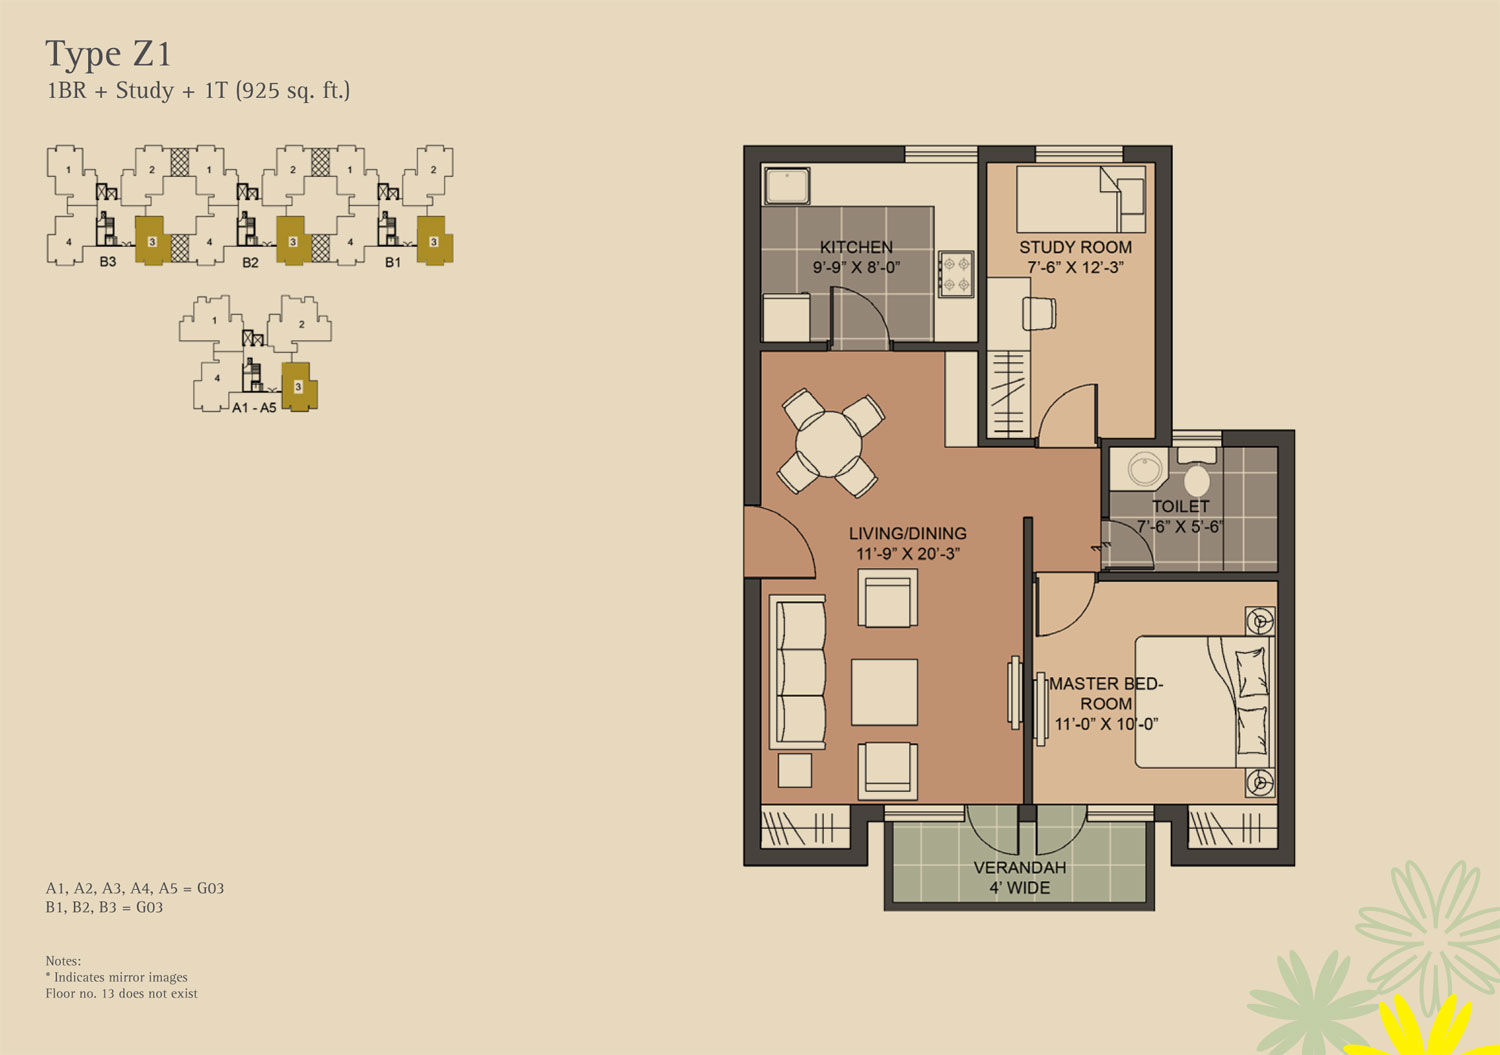 Unitech crestview apartments sector 70 gurgaon for 1 bhk home designs